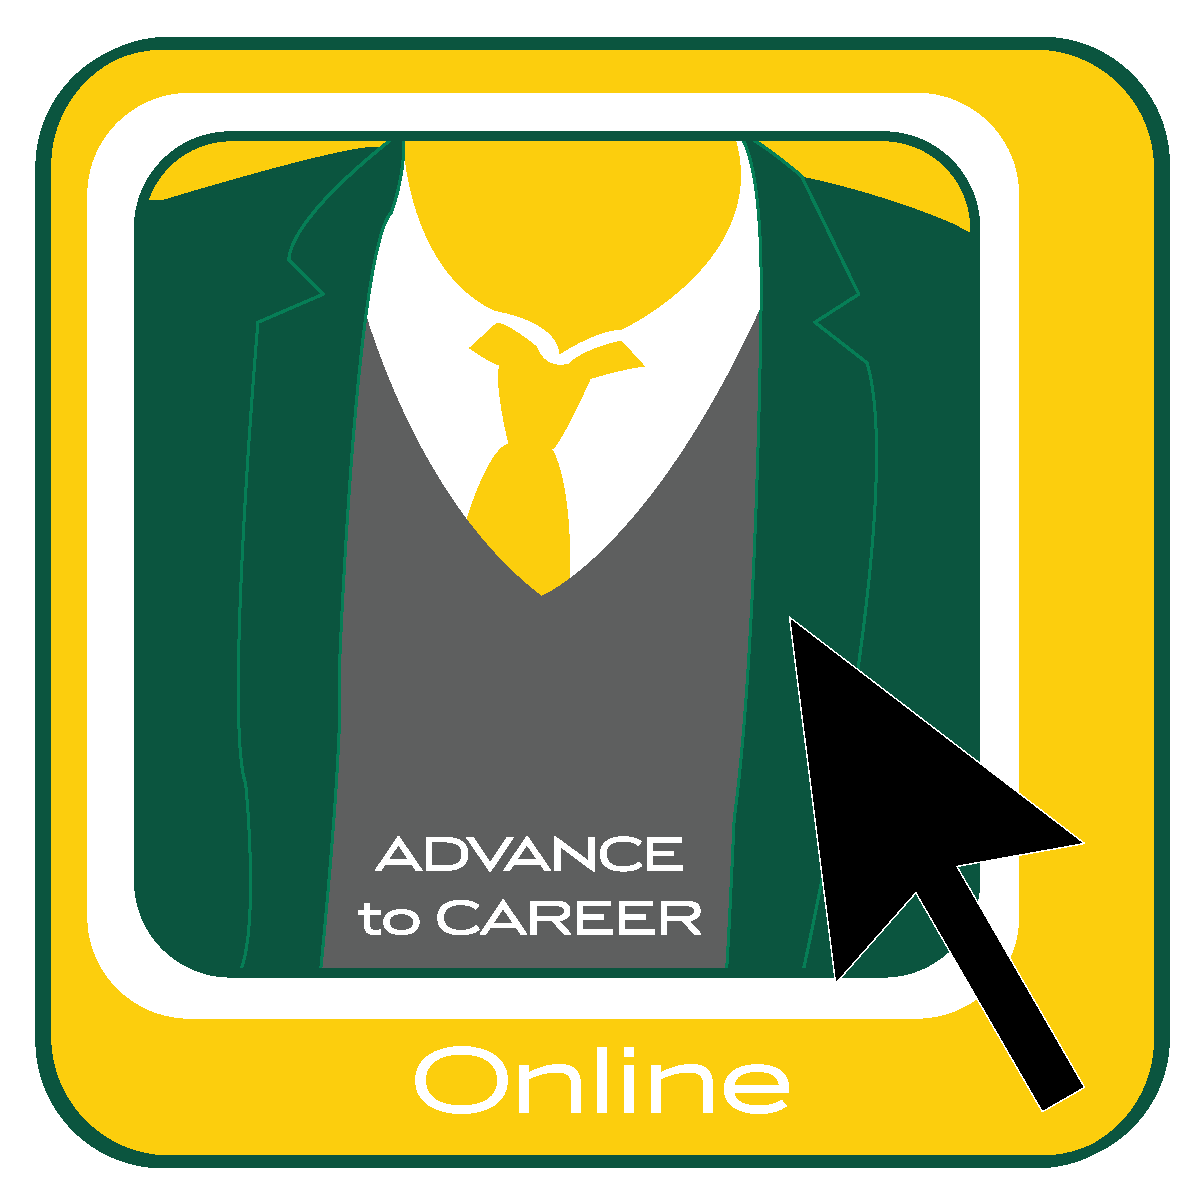 Advance to Career Online